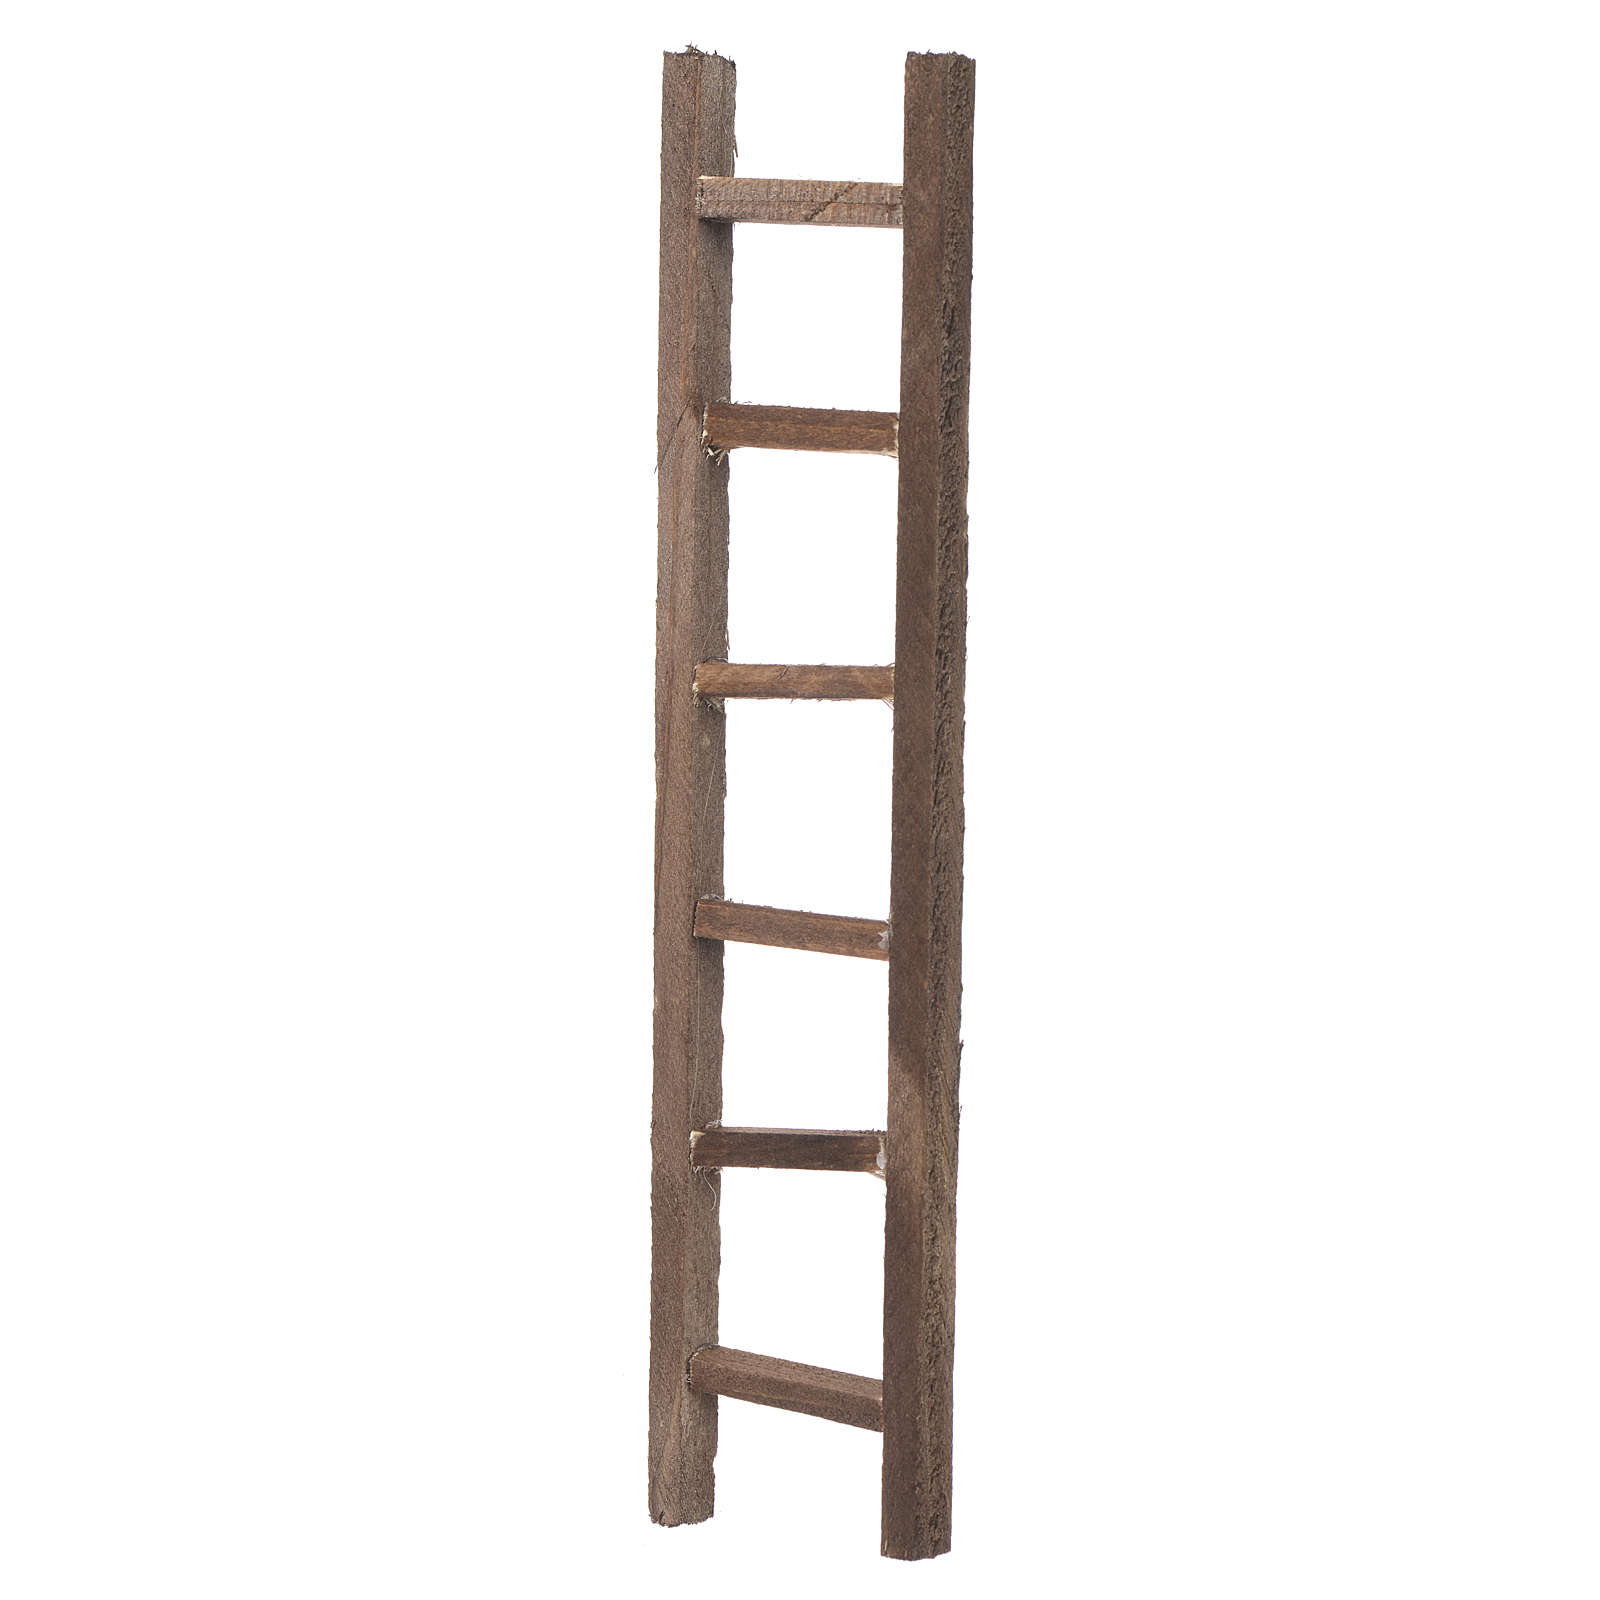 Wooden ladder, nativity accessory 22x4.5cm 4